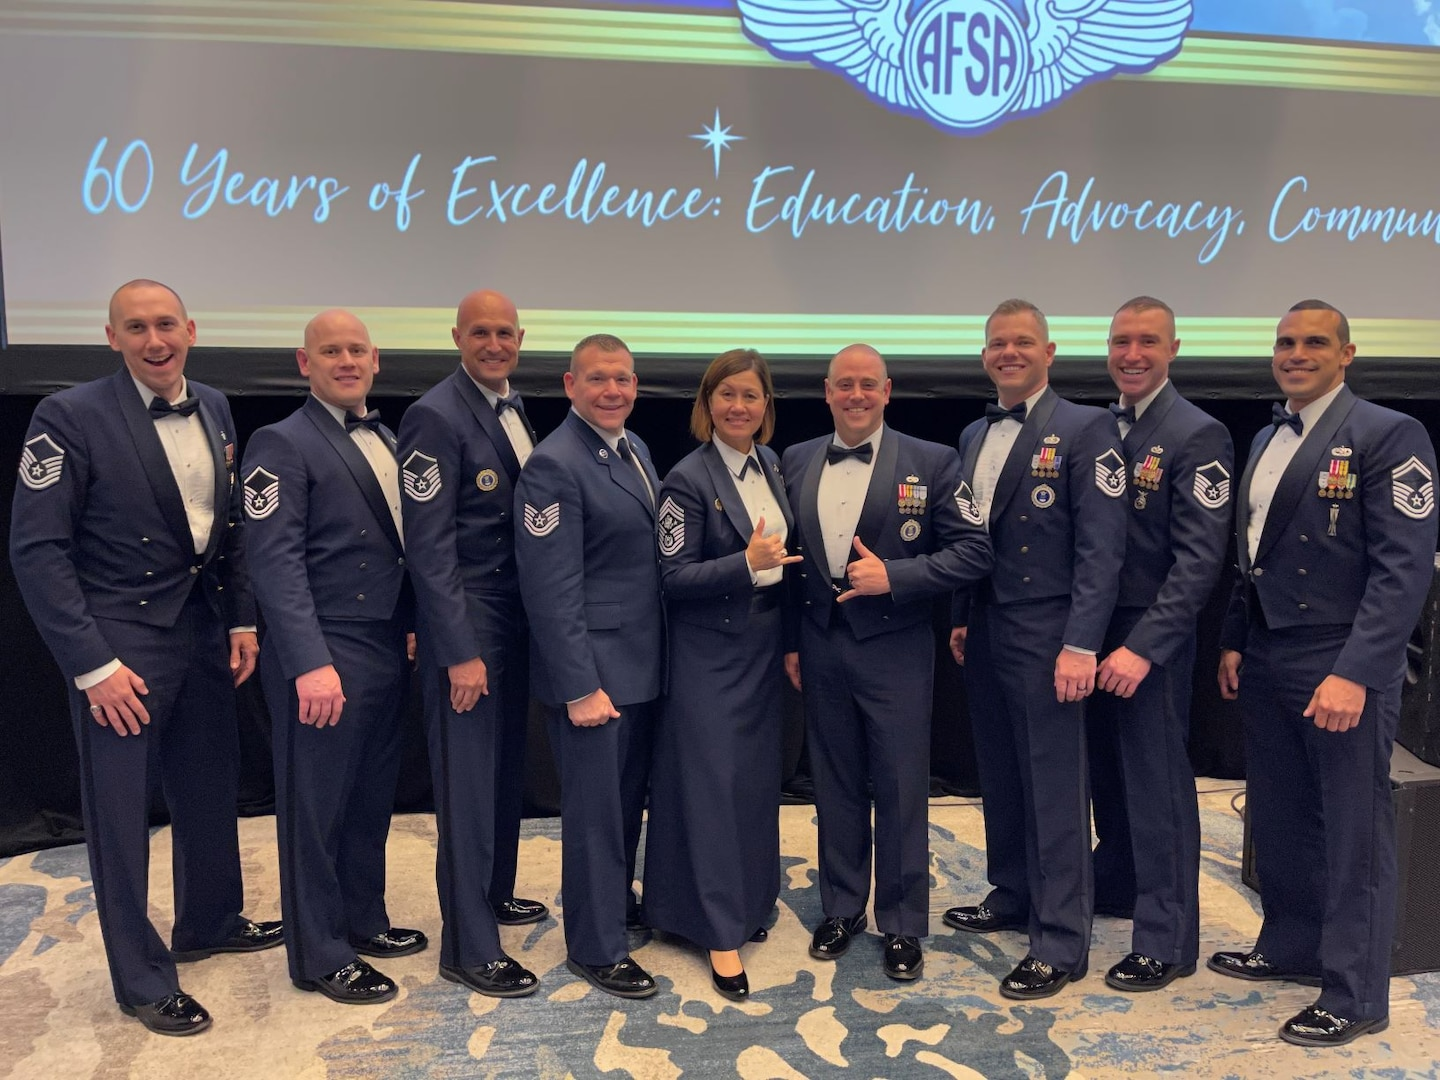 Master Sgt. James Zwiebel, of the 348th Recruiting Squadron officer accessions flight, receives the Air Force Sergeants Association's Award of Excellence at the at association's Professional Education and Development Symposium July 2021 in Orlando, Florida.